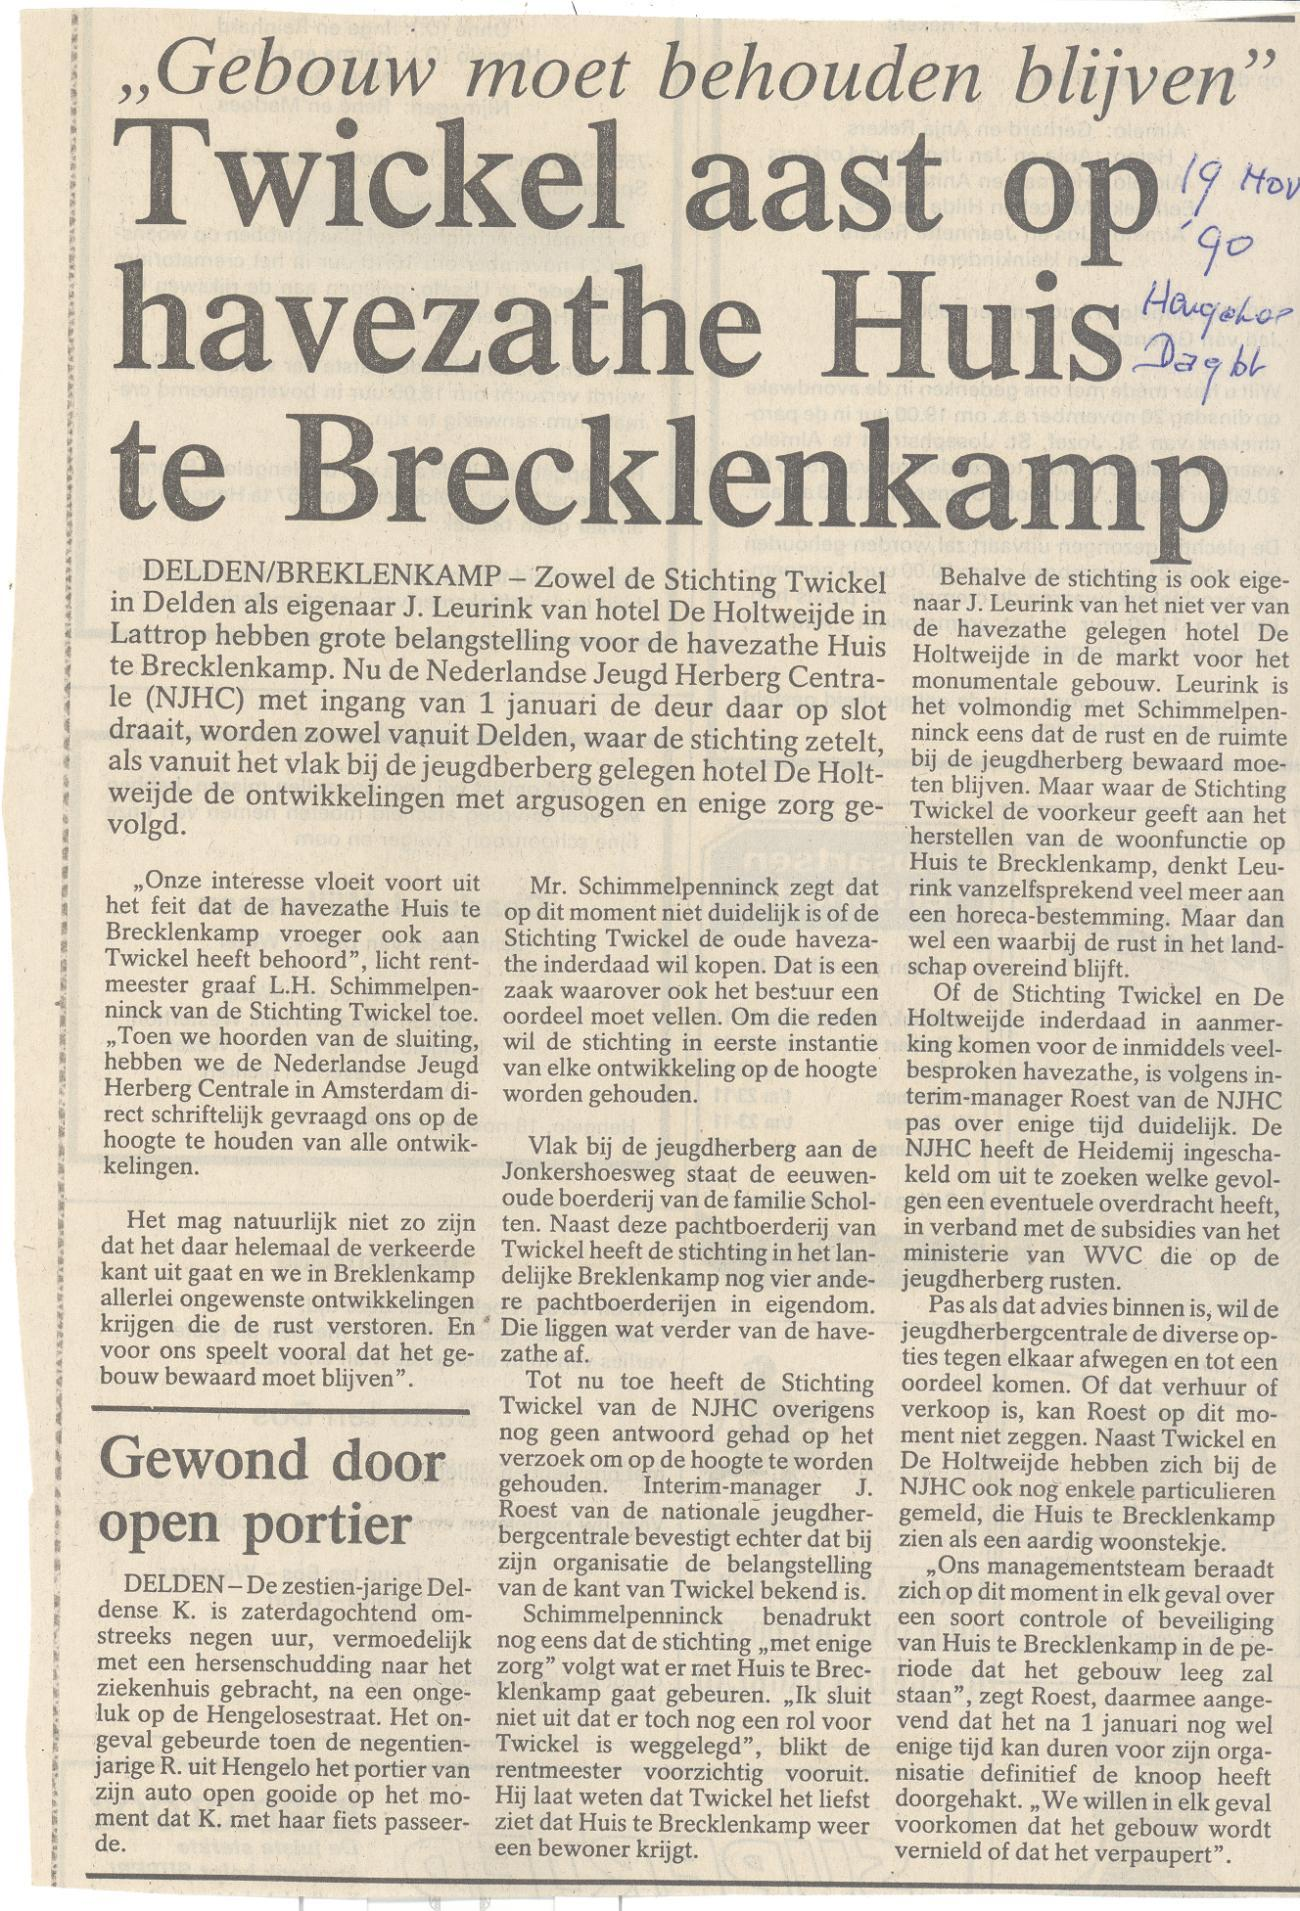 Twickel aast op havezathe Huis te Brecklenkamp